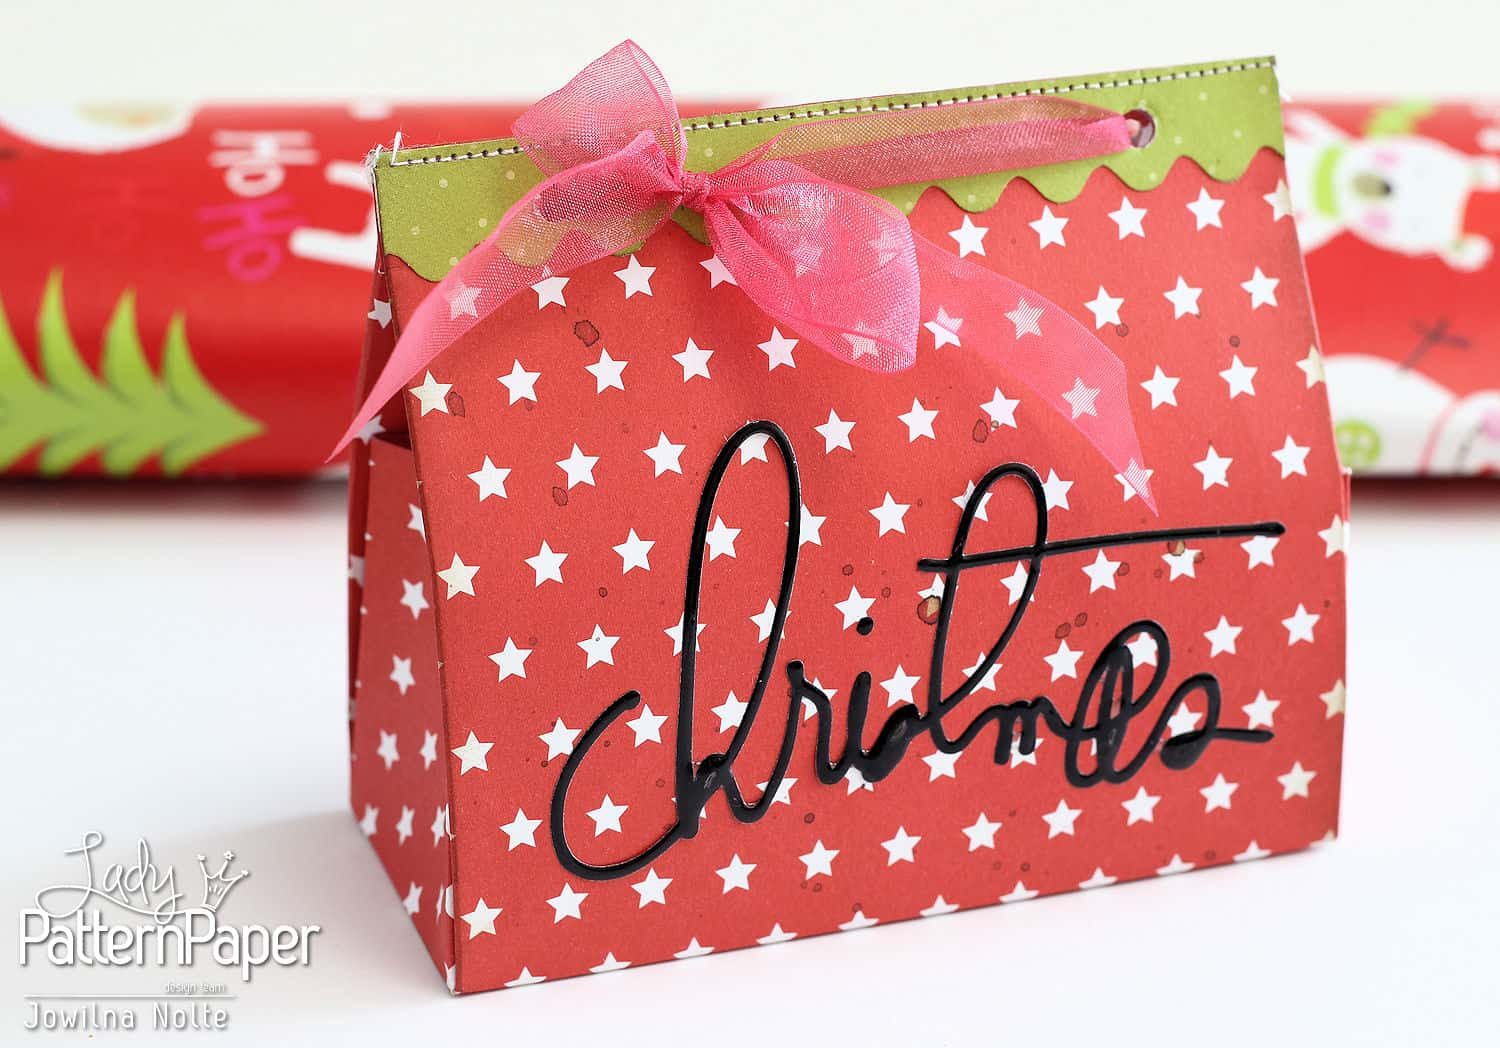 Diy christmas gift boxes ⋆ lady pattern paper